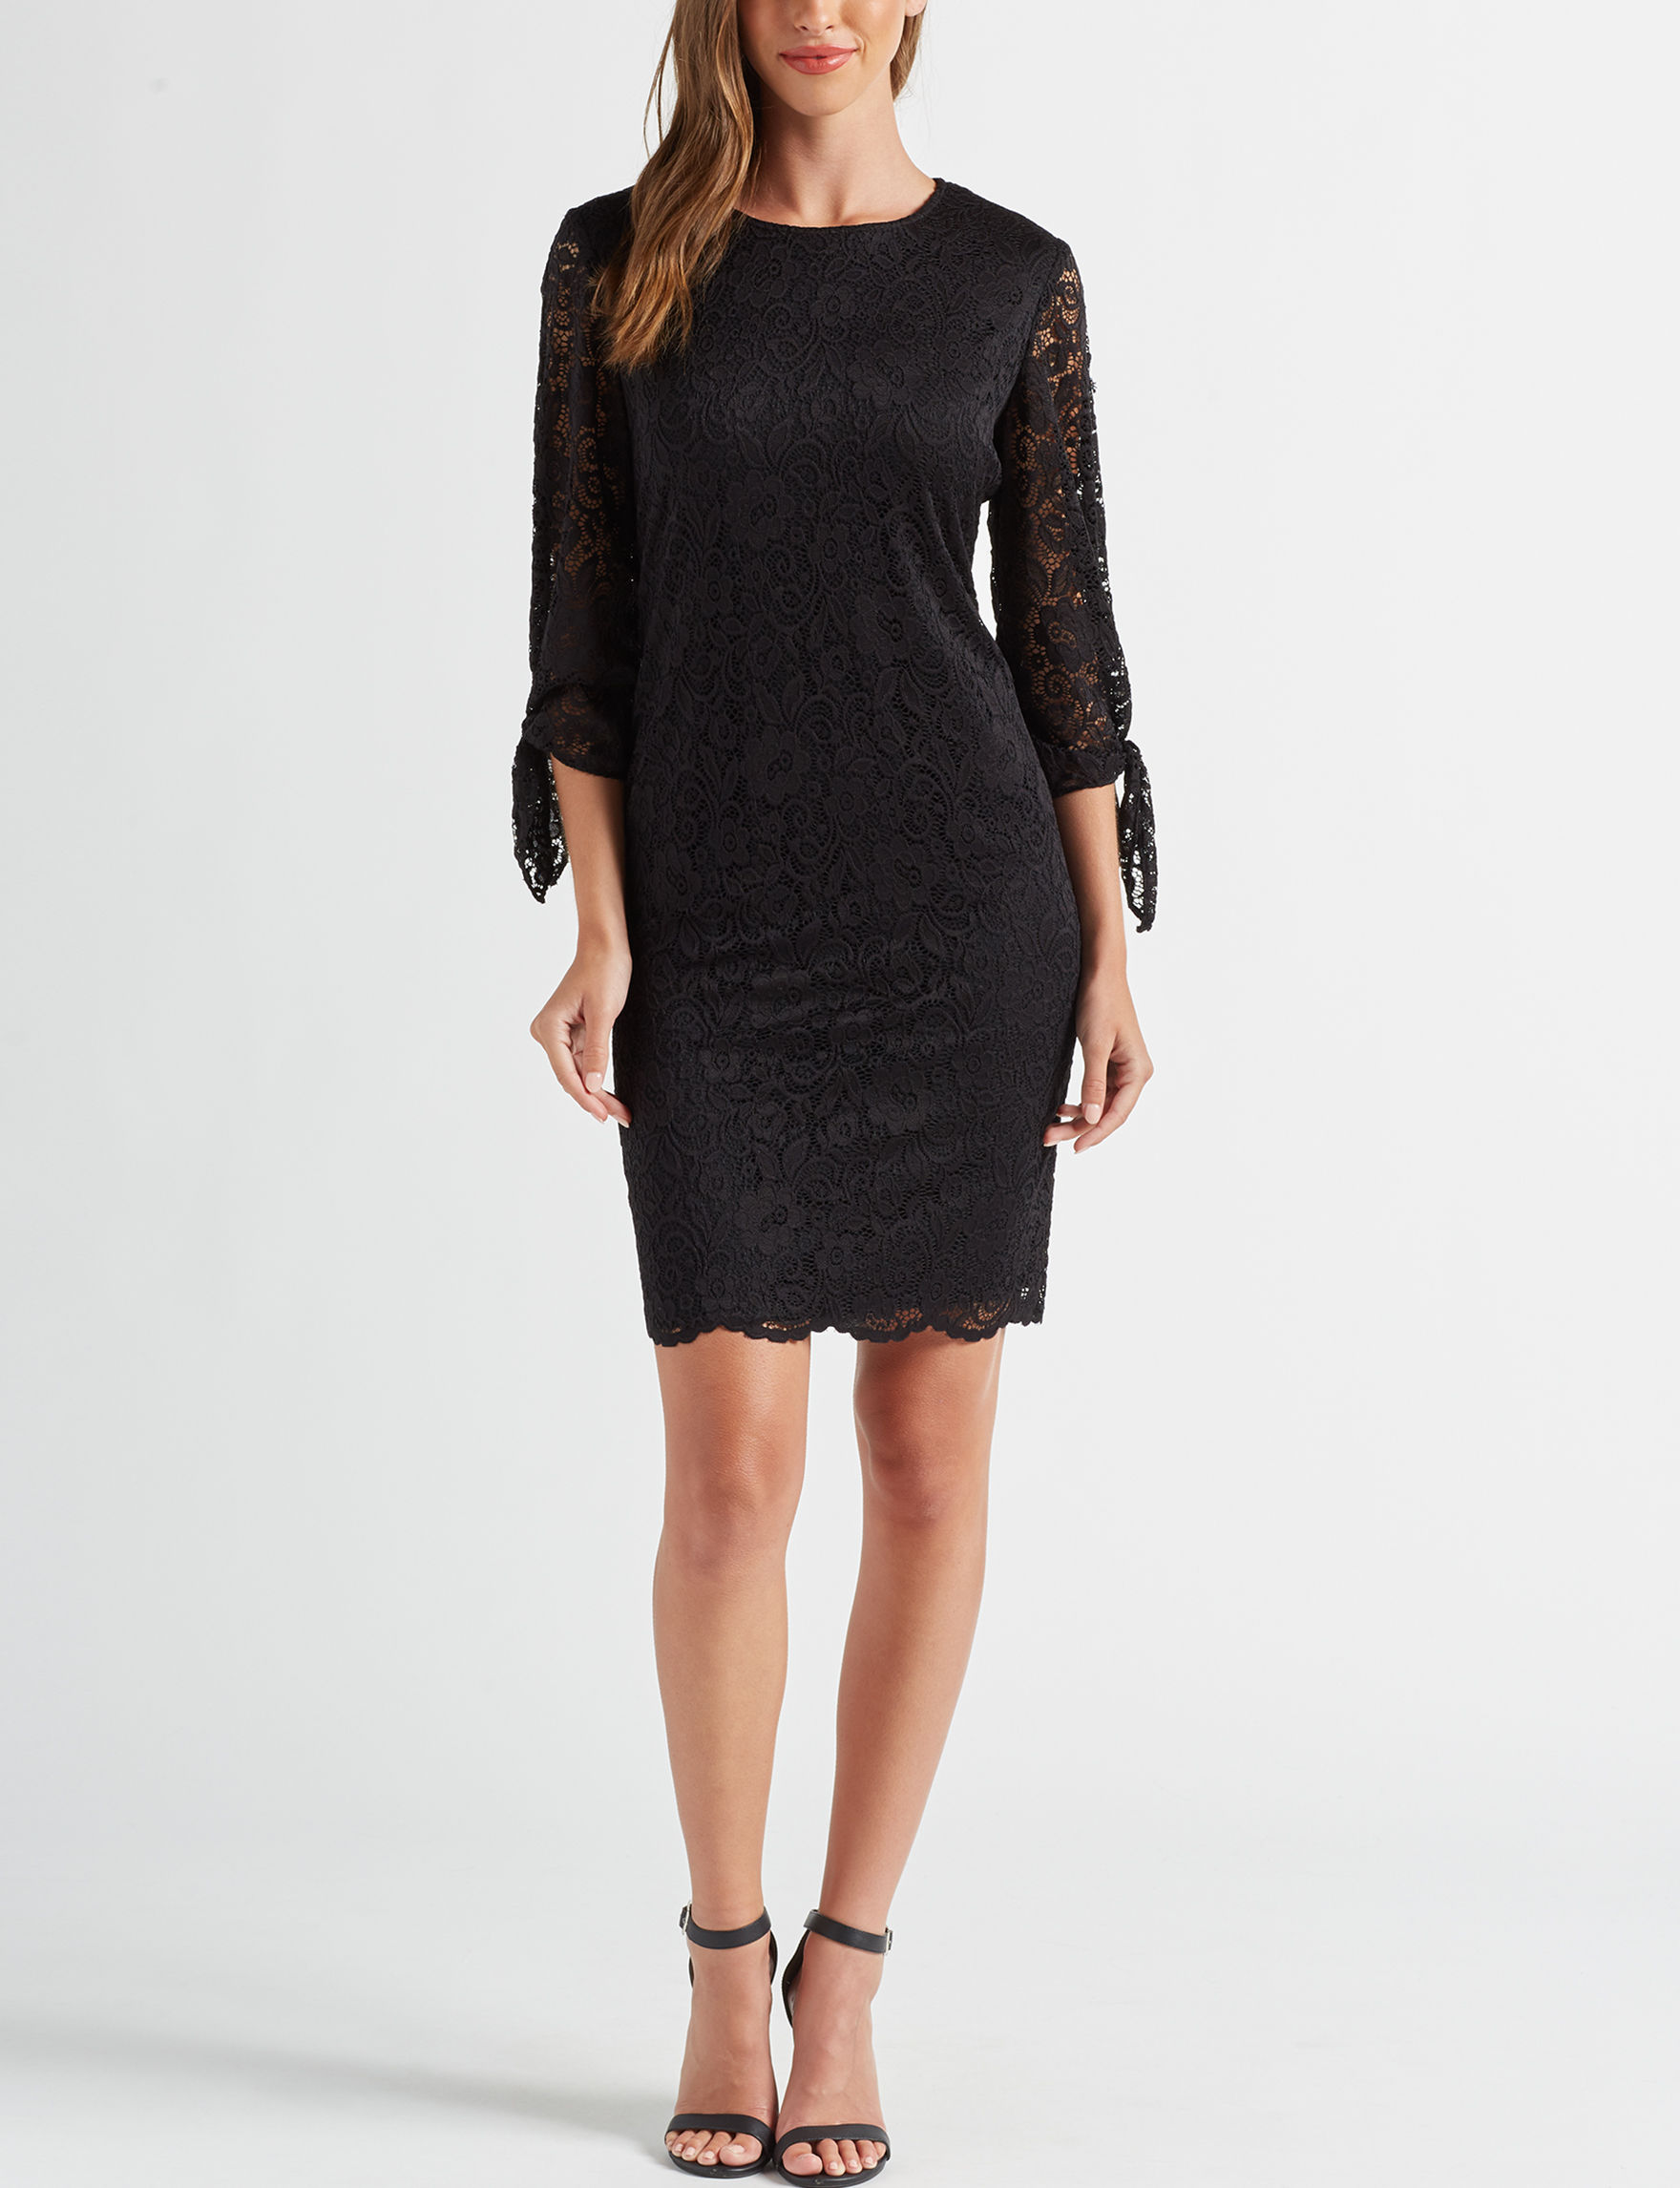 Ronni Nicole Black Cocktail & Party Evening & Formal Sheath Dresses